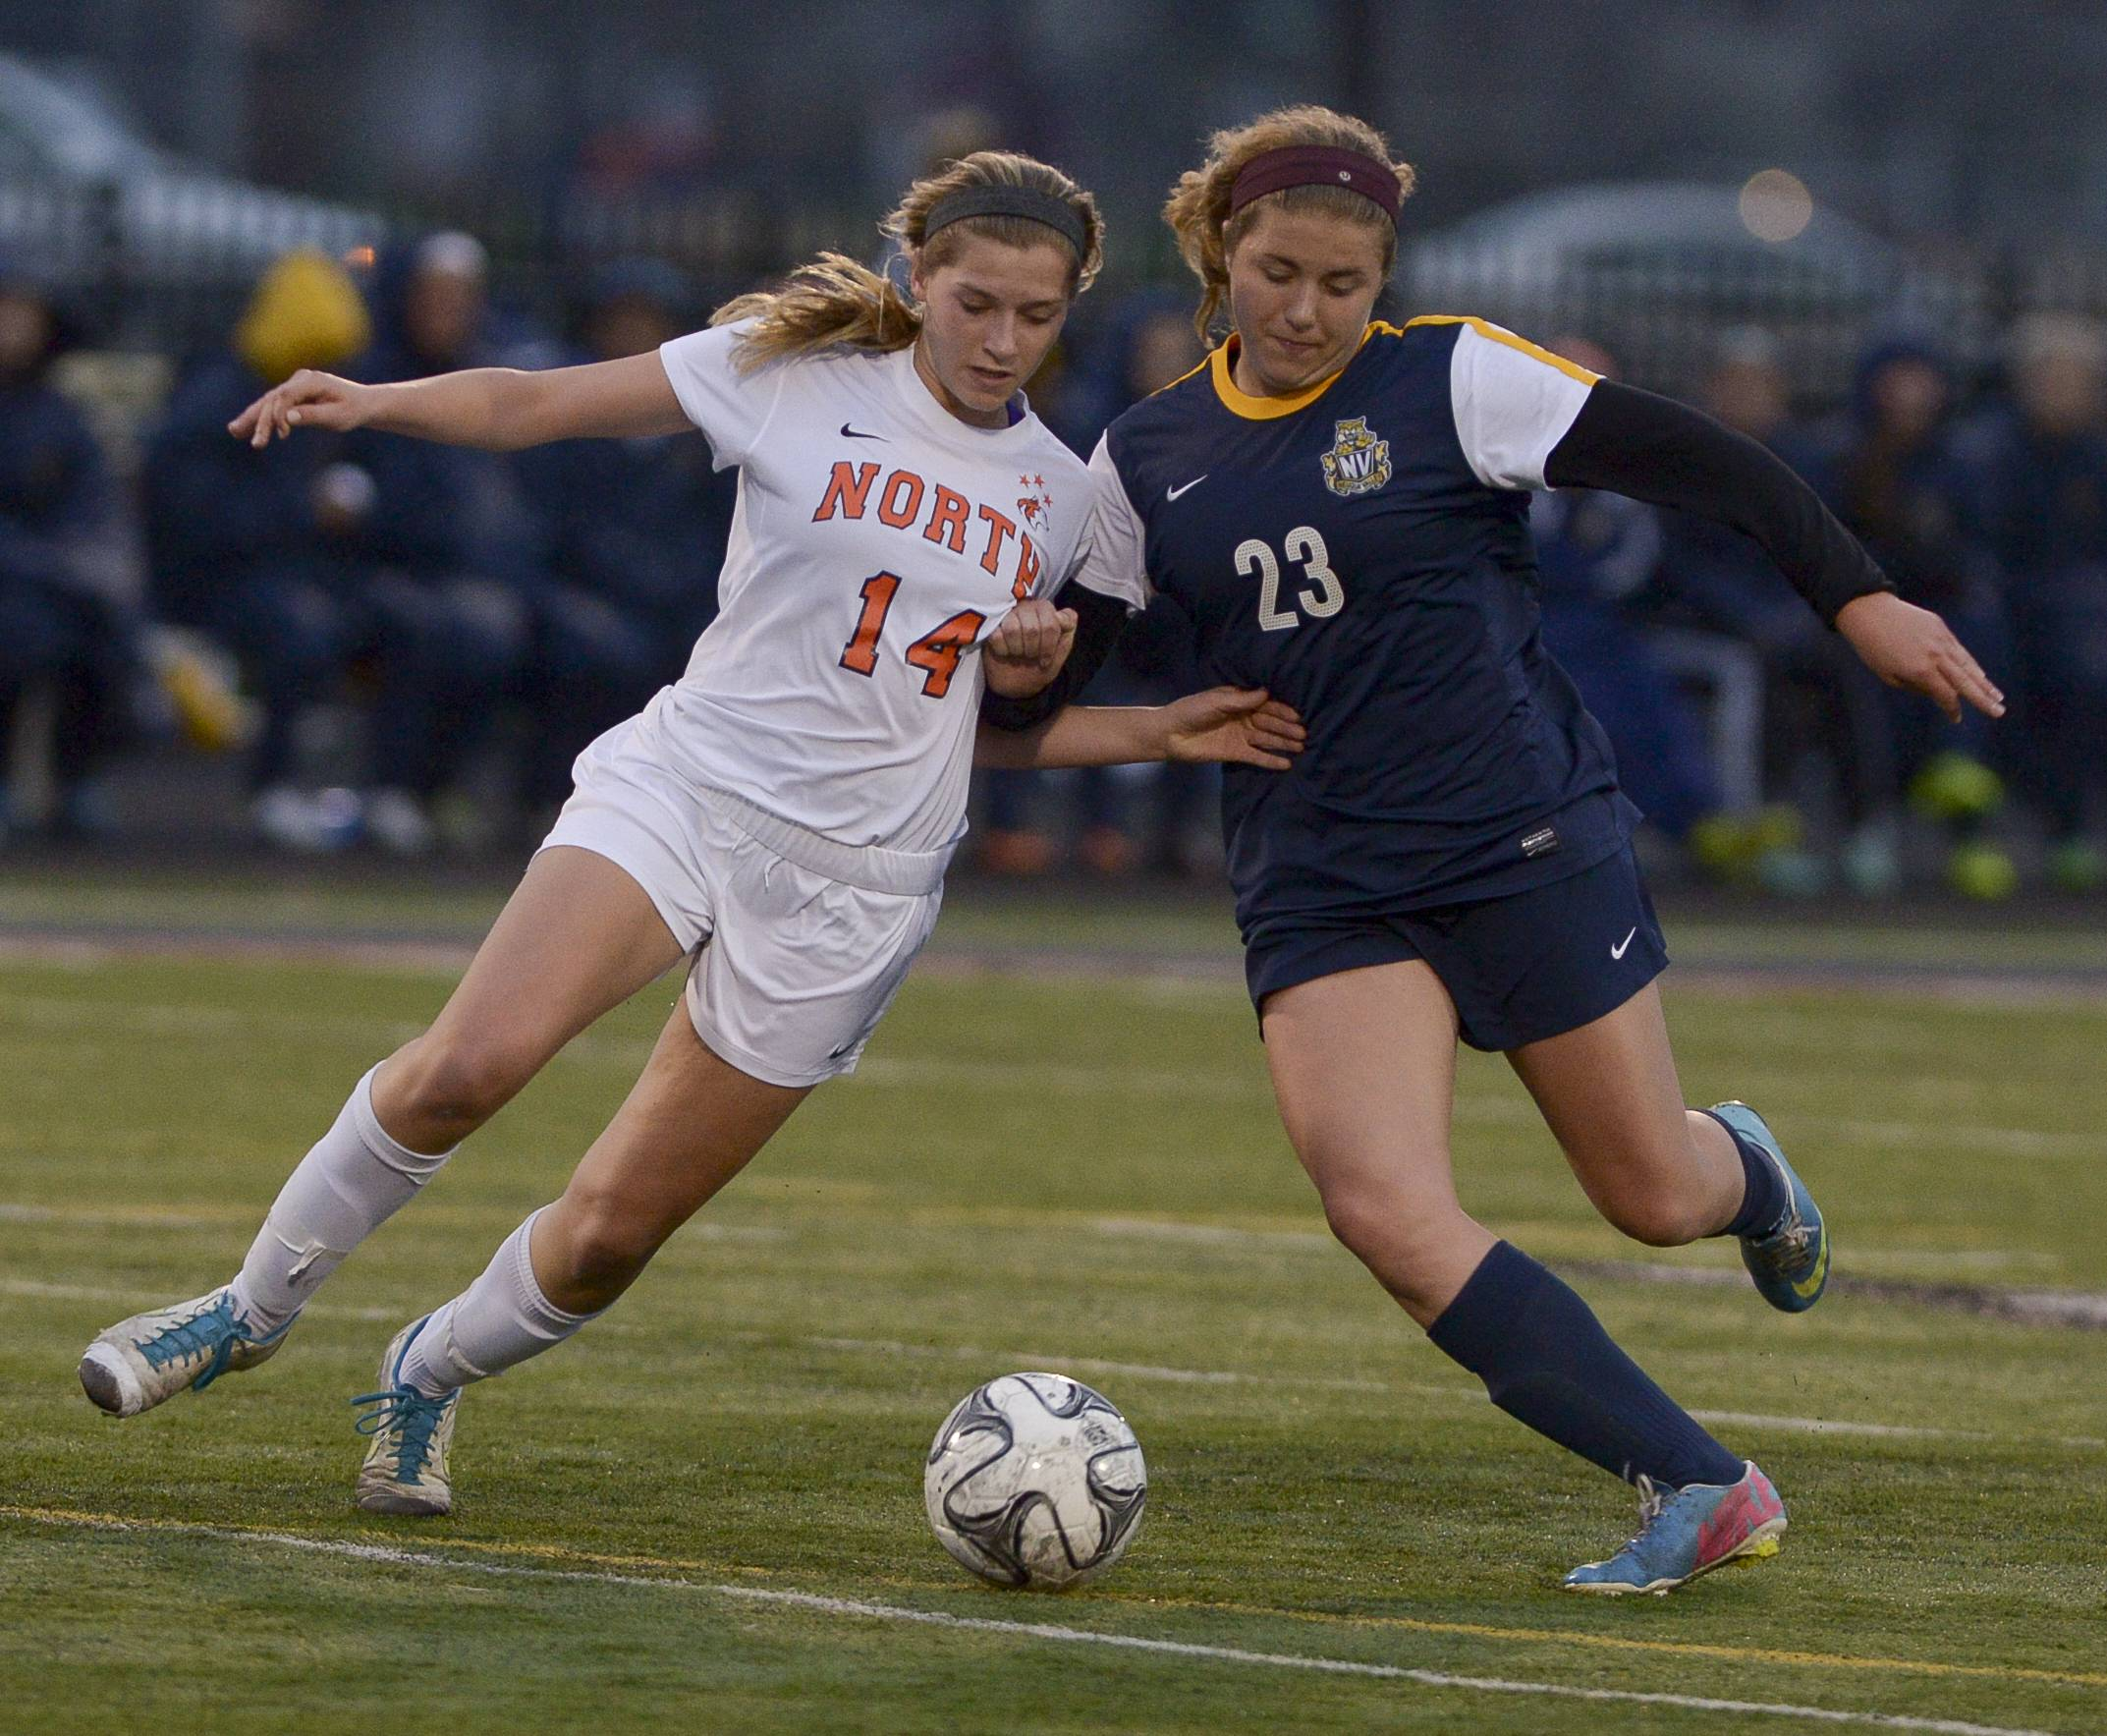 Naperville North's Olivia Stapelton Neuqua Valley's Allie Fullreide battle for control of the ball during the 2014 Naperville girls soccer invitational, Thursday.